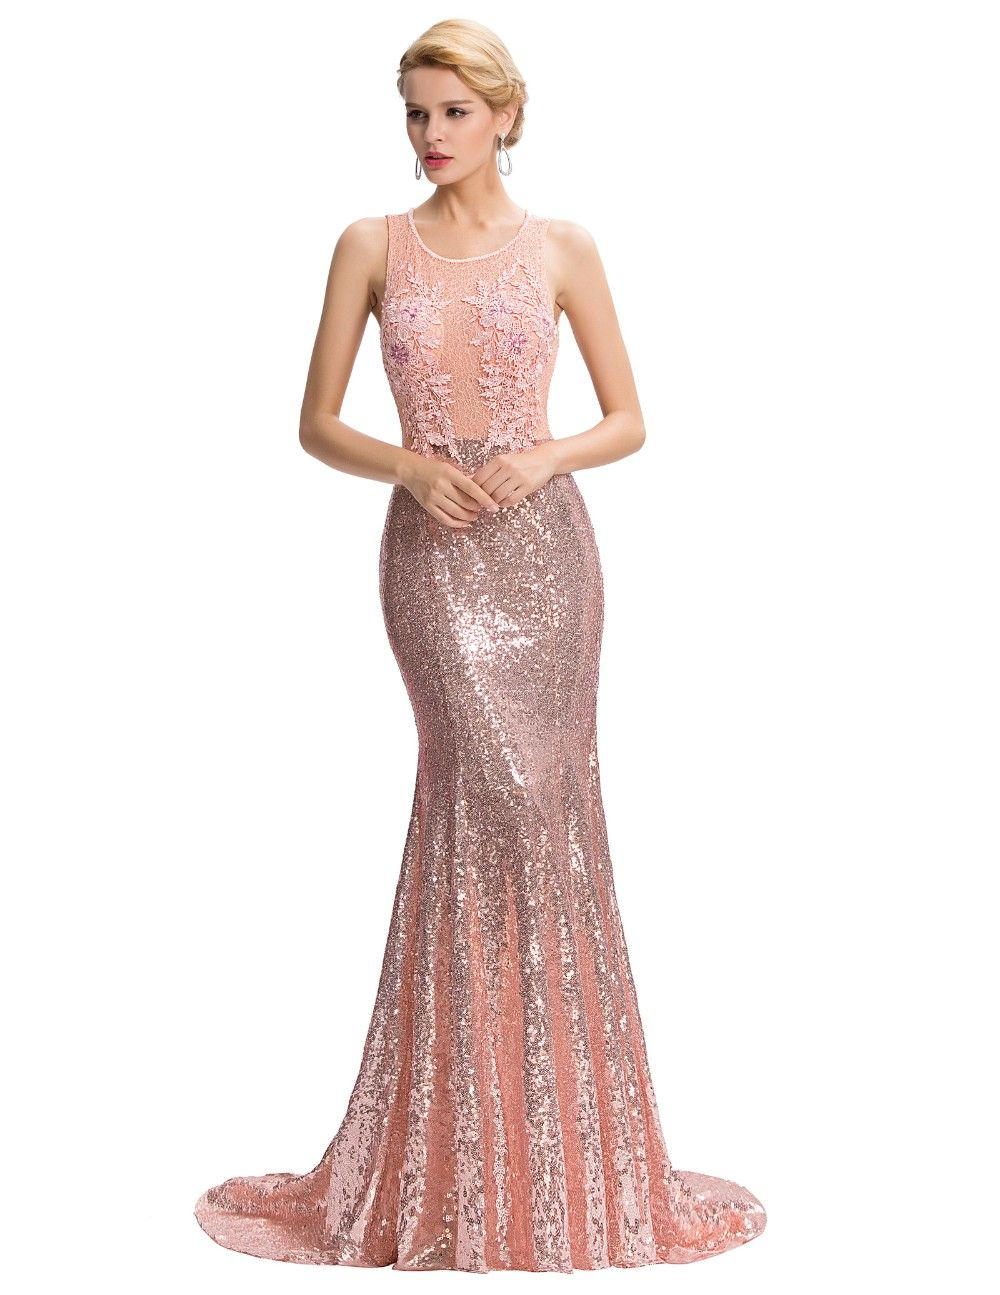 e1878a4e2a4  97.42 - Awesome Grace Karin Luxury Mermaid Evening Dress Floor Length  Backless Elegant Pink Sequined Lace Long Evening Gowns Robe De Soiree 2017  - Buy it ...